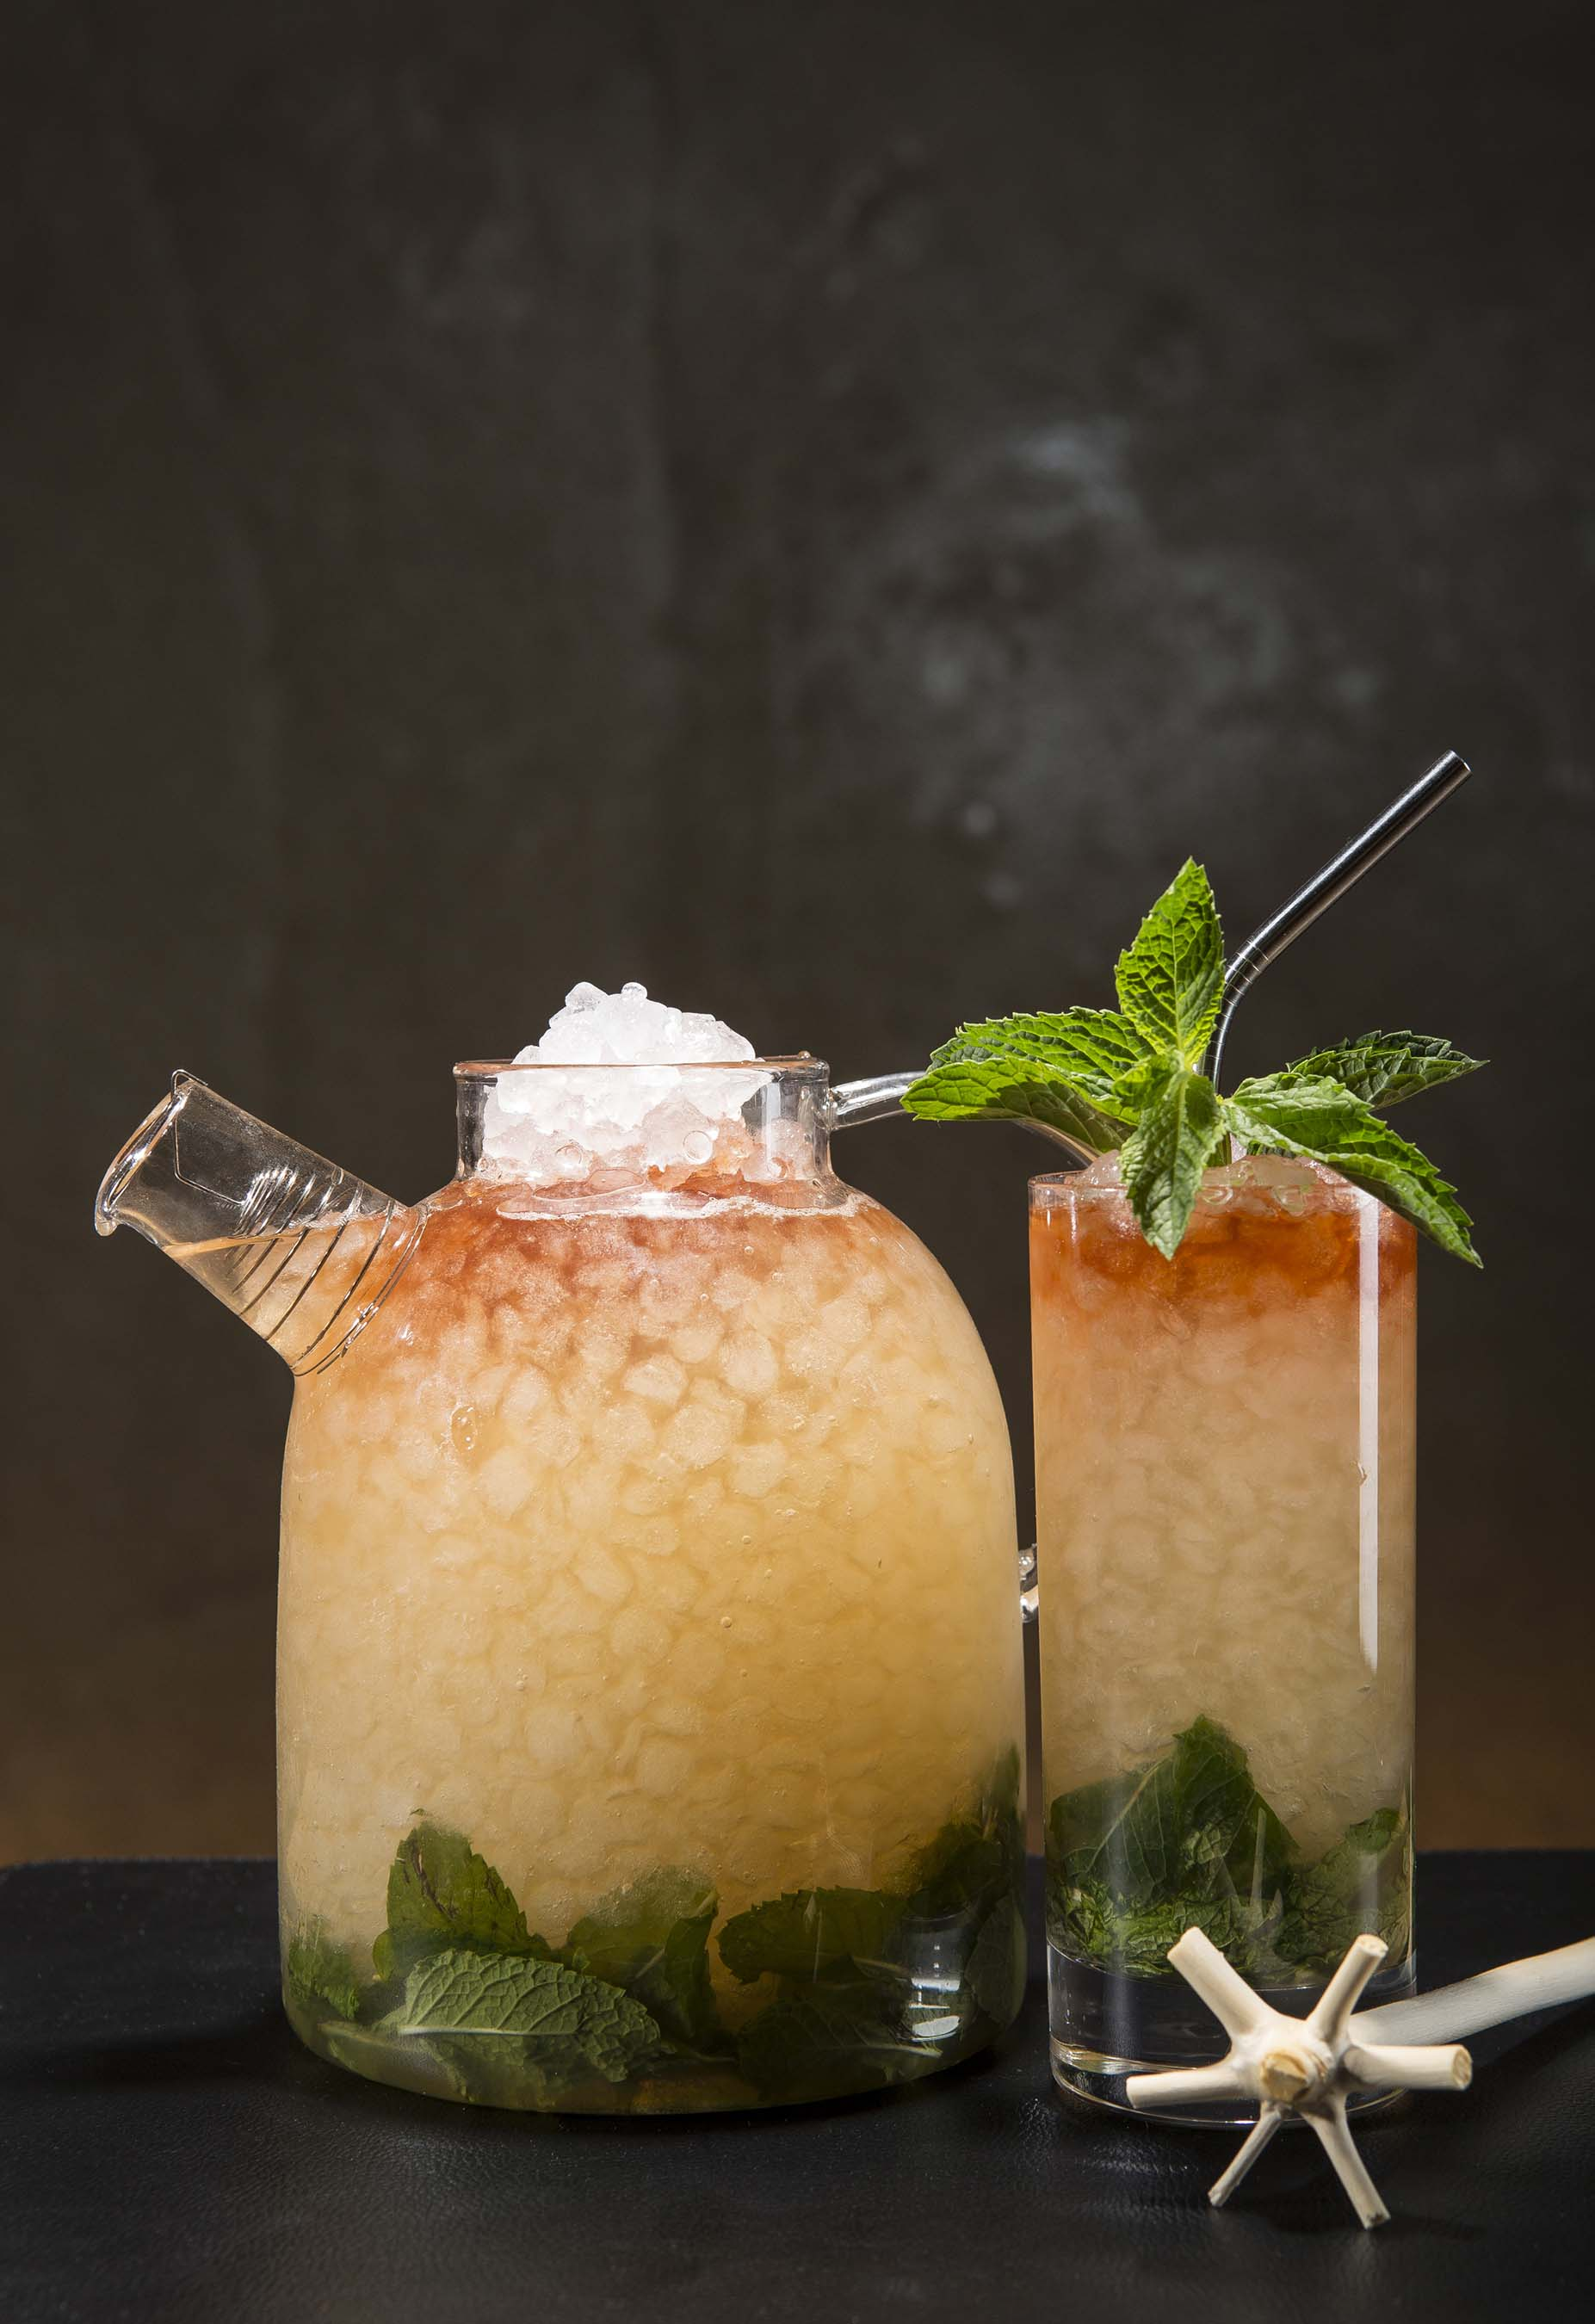 Inspired by the Queens Park Hotel in Trinidad, El Dorado rum, demerara syrup, lime juice, spearmint and Angostura bitters are mixed together with a swizzle stick and served on ice.